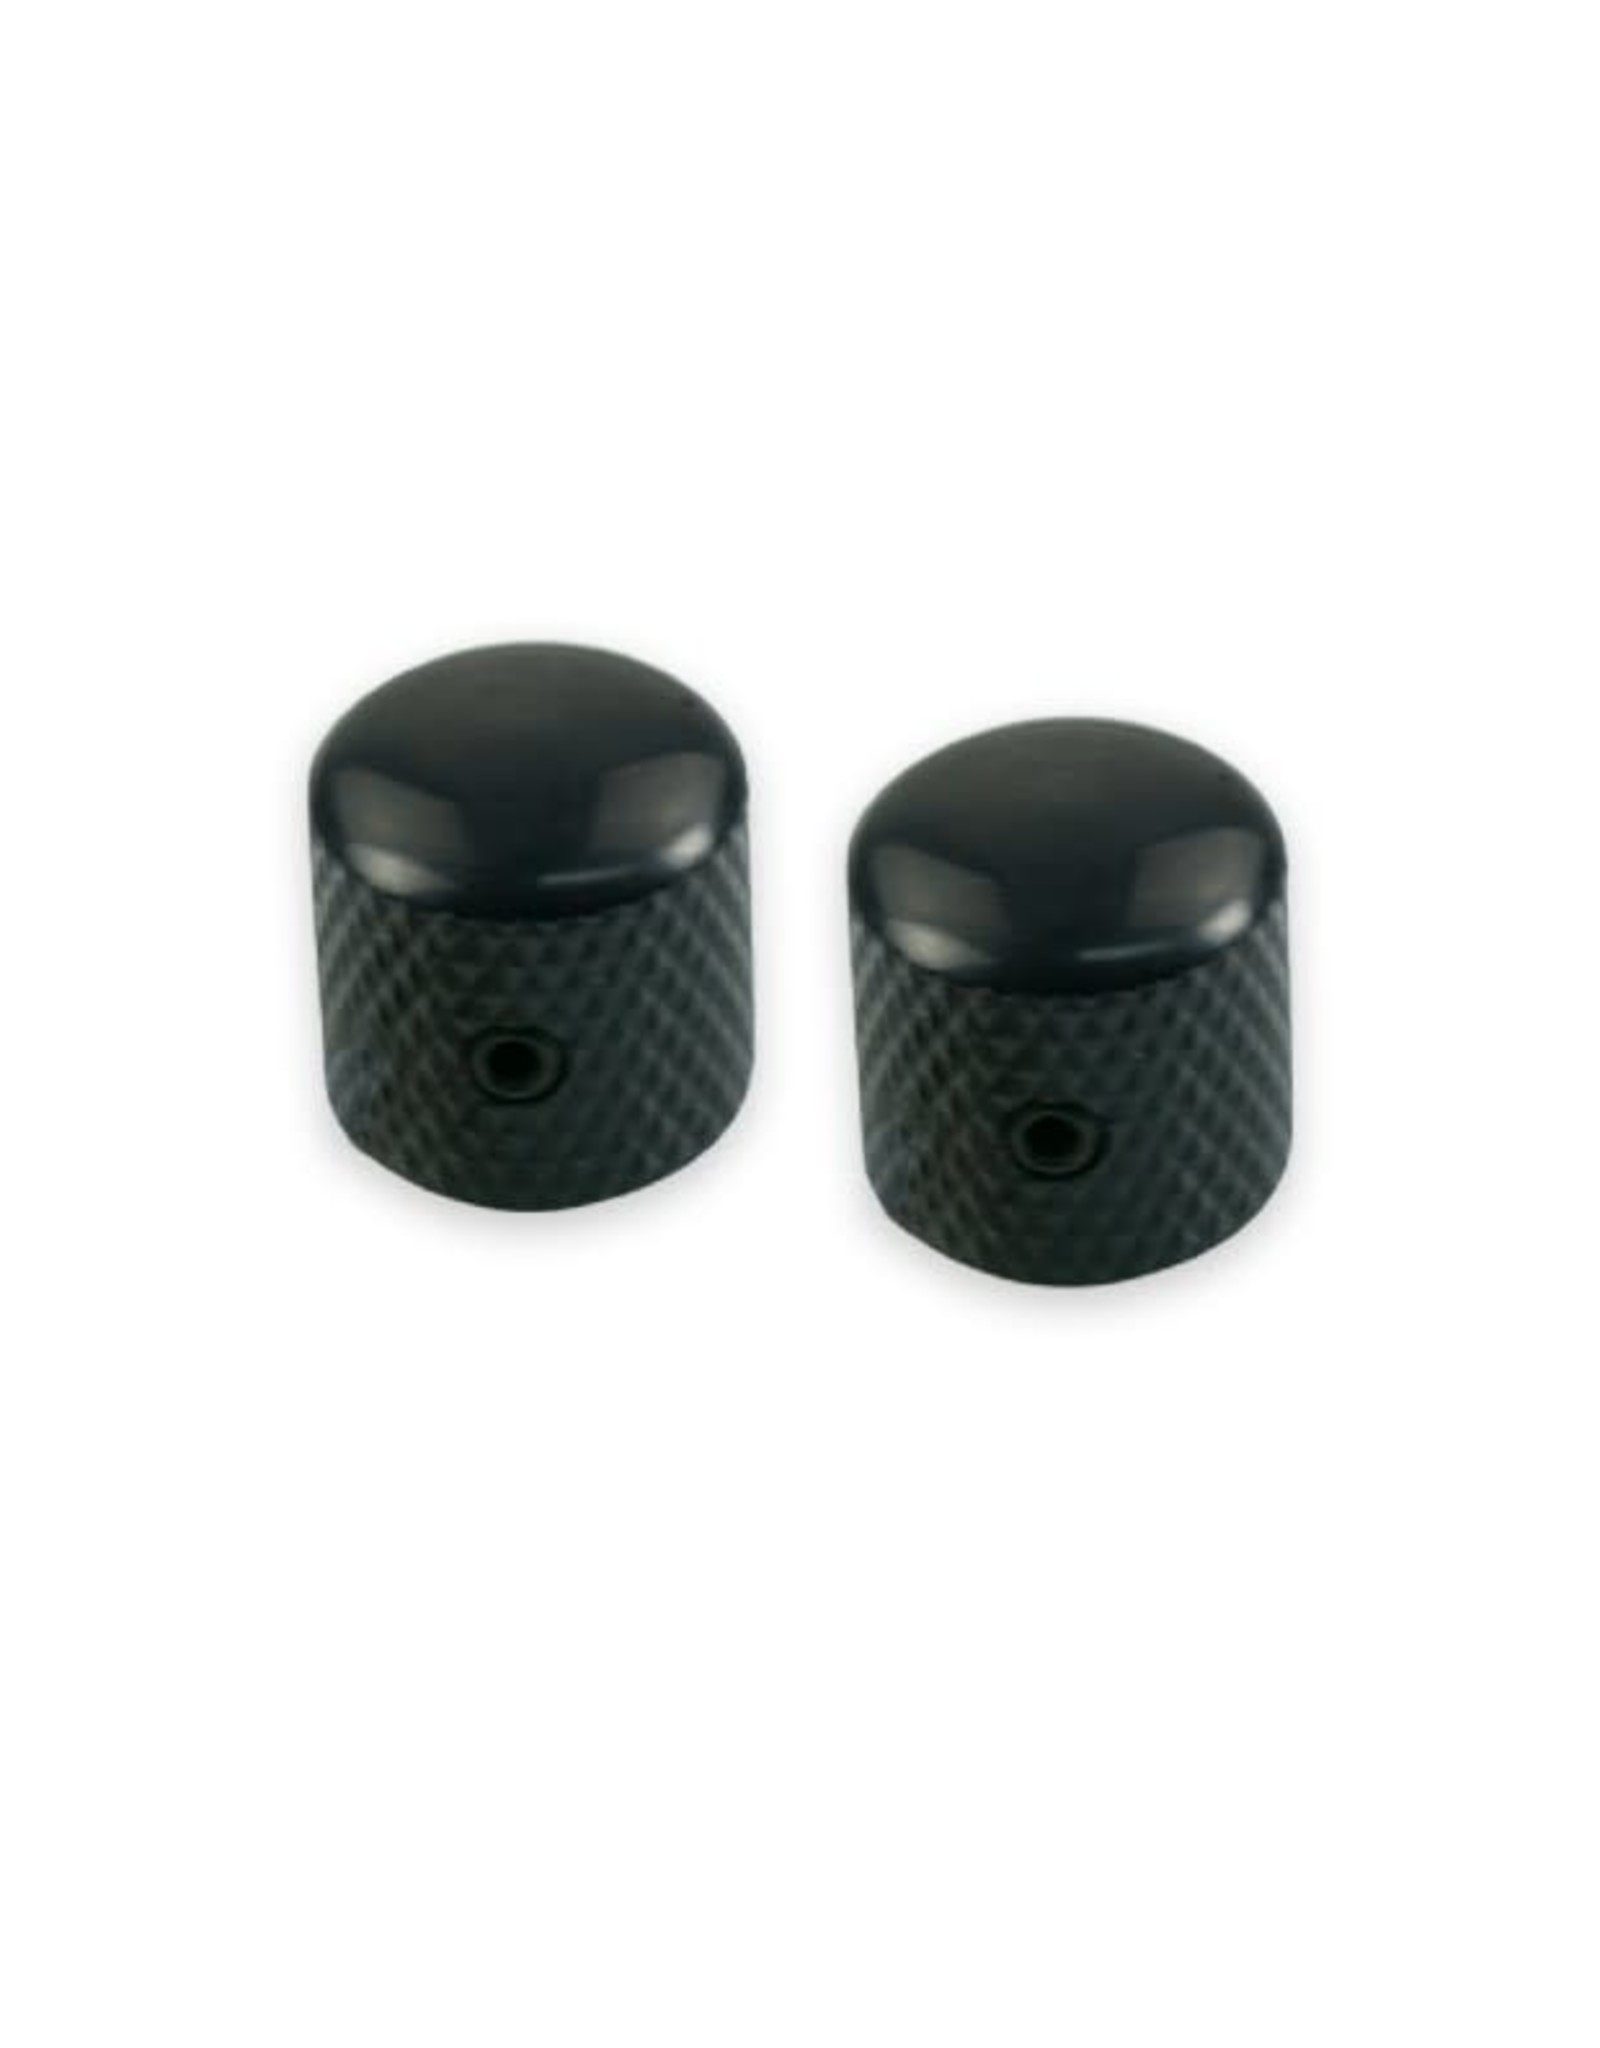 WD Music Products WD® Brass Dome Knob Set Of 2 With 1/4 in. Internal Diameter Black